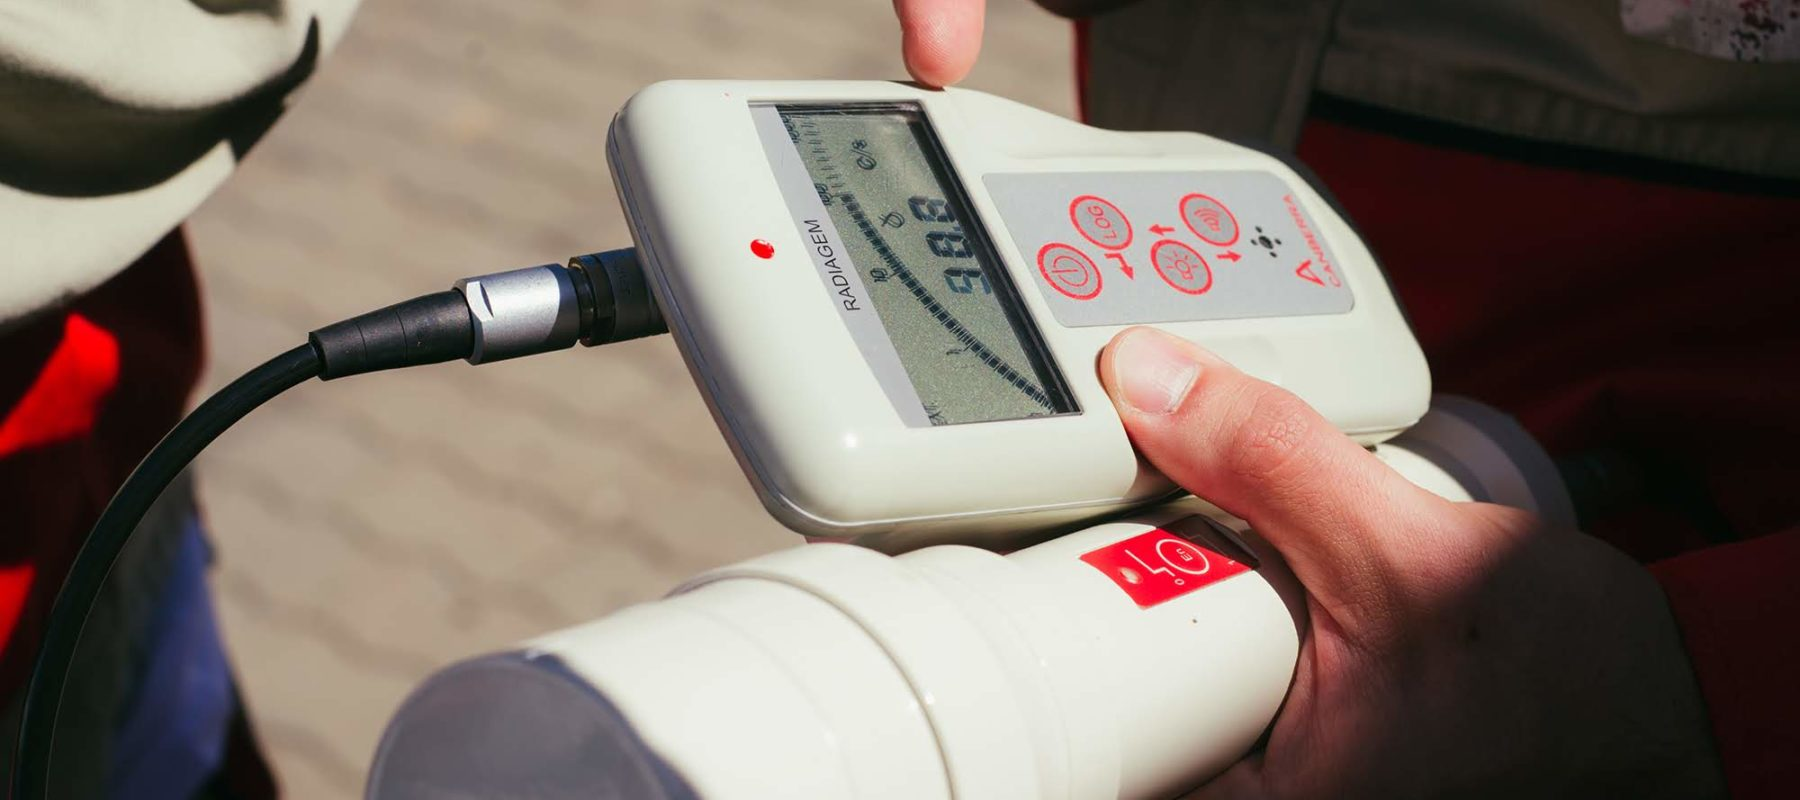 The dosimeter in the hands